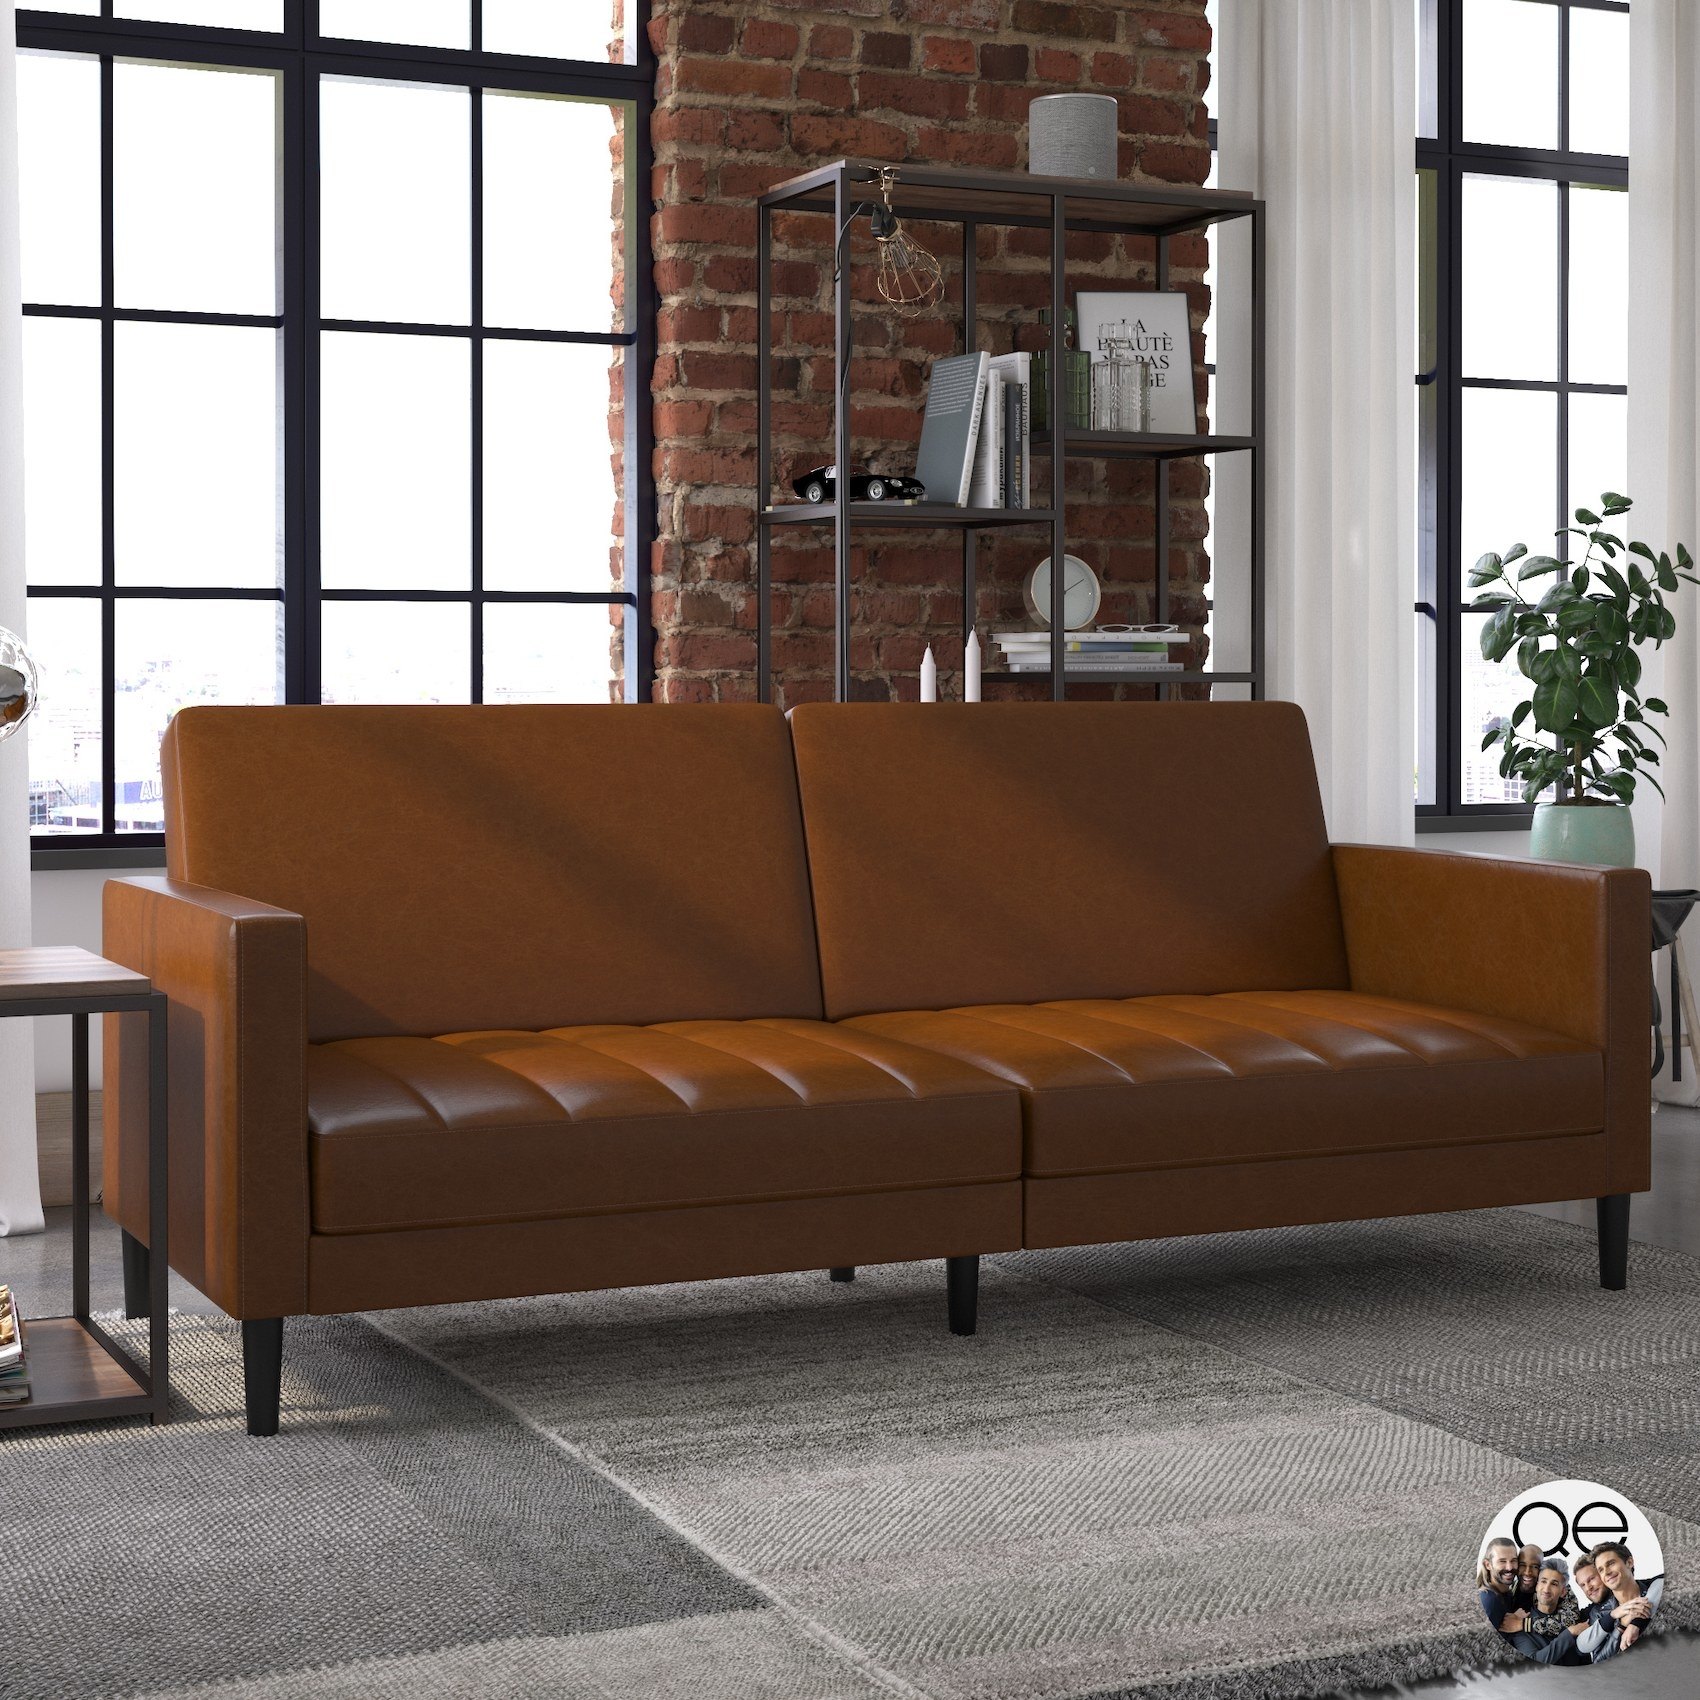 The brown sofa with a textured bottom cushion